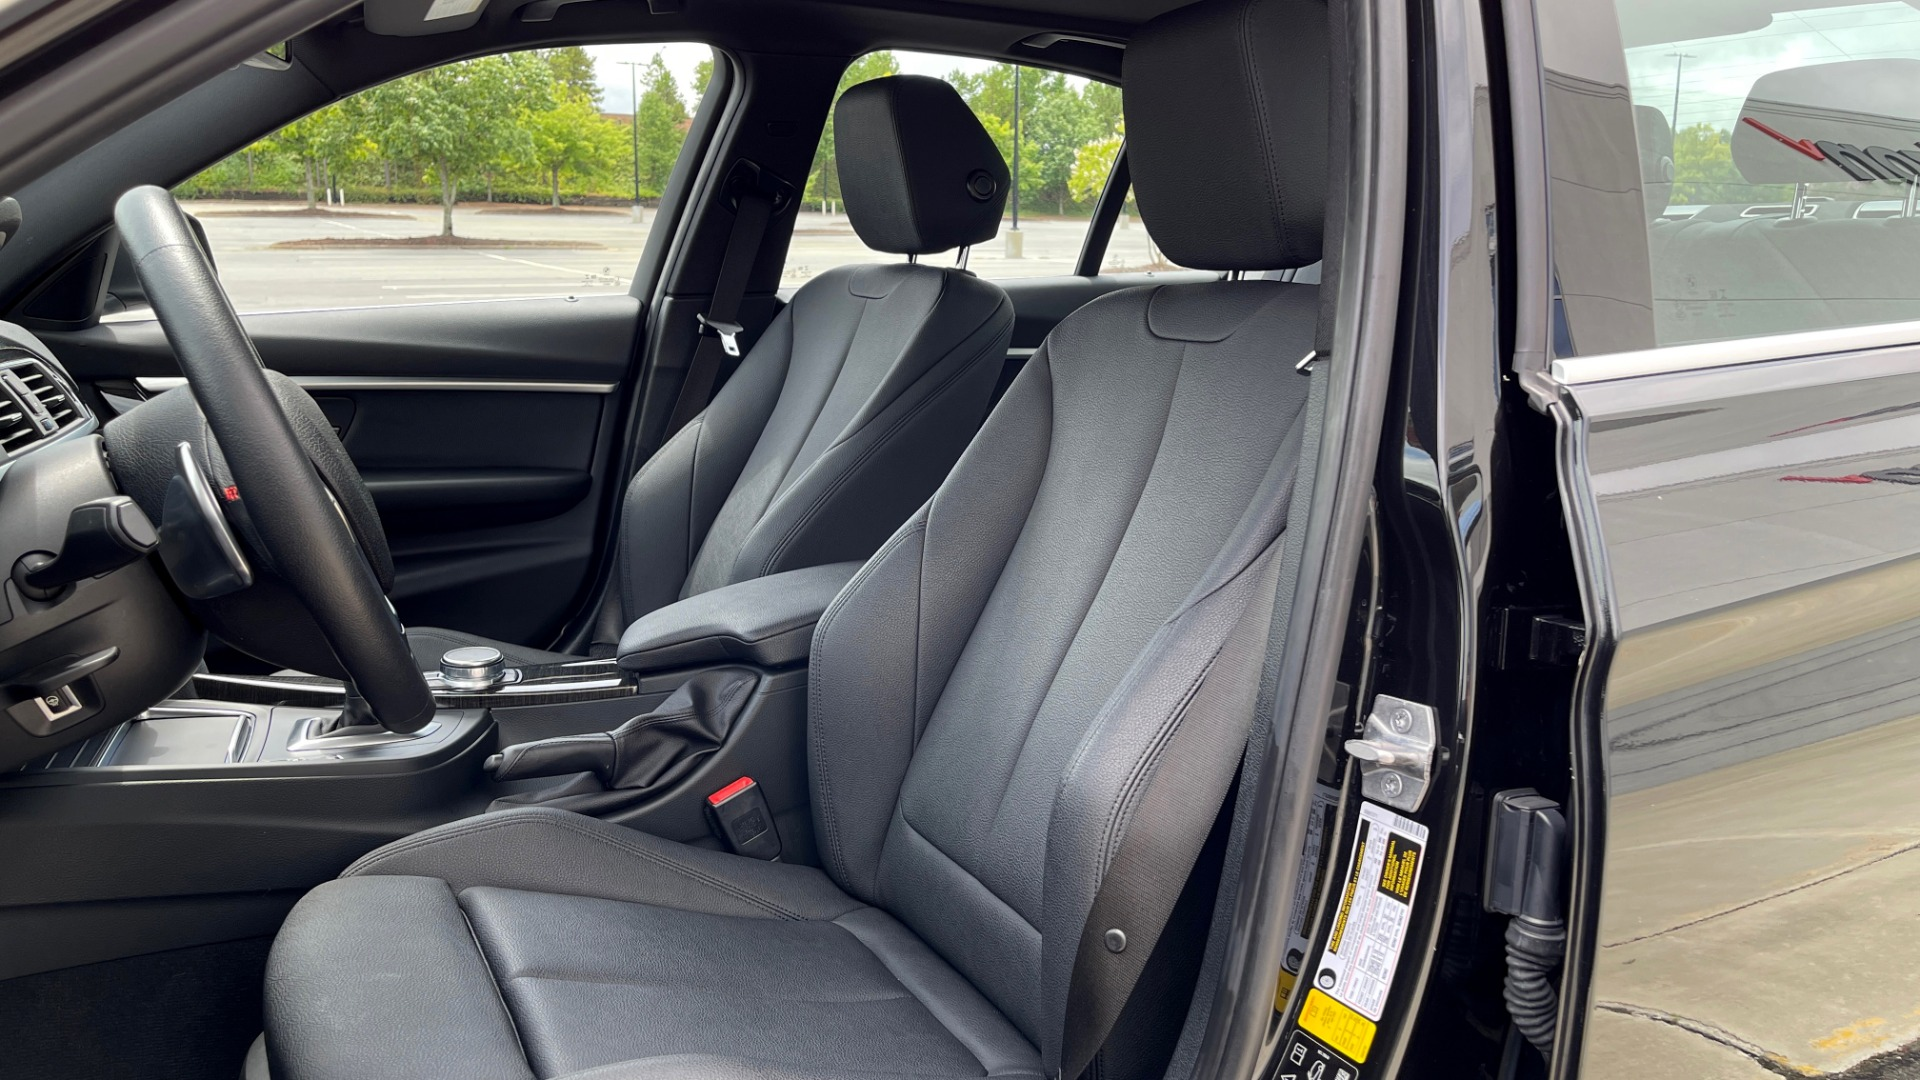 Used 2018 BMW 3 SERIES 330IXDRIVE / NAV / CONV PKG / ABSD / SUNROOF / REARVIEW for sale $29,599 at Formula Imports in Charlotte NC 28227 27